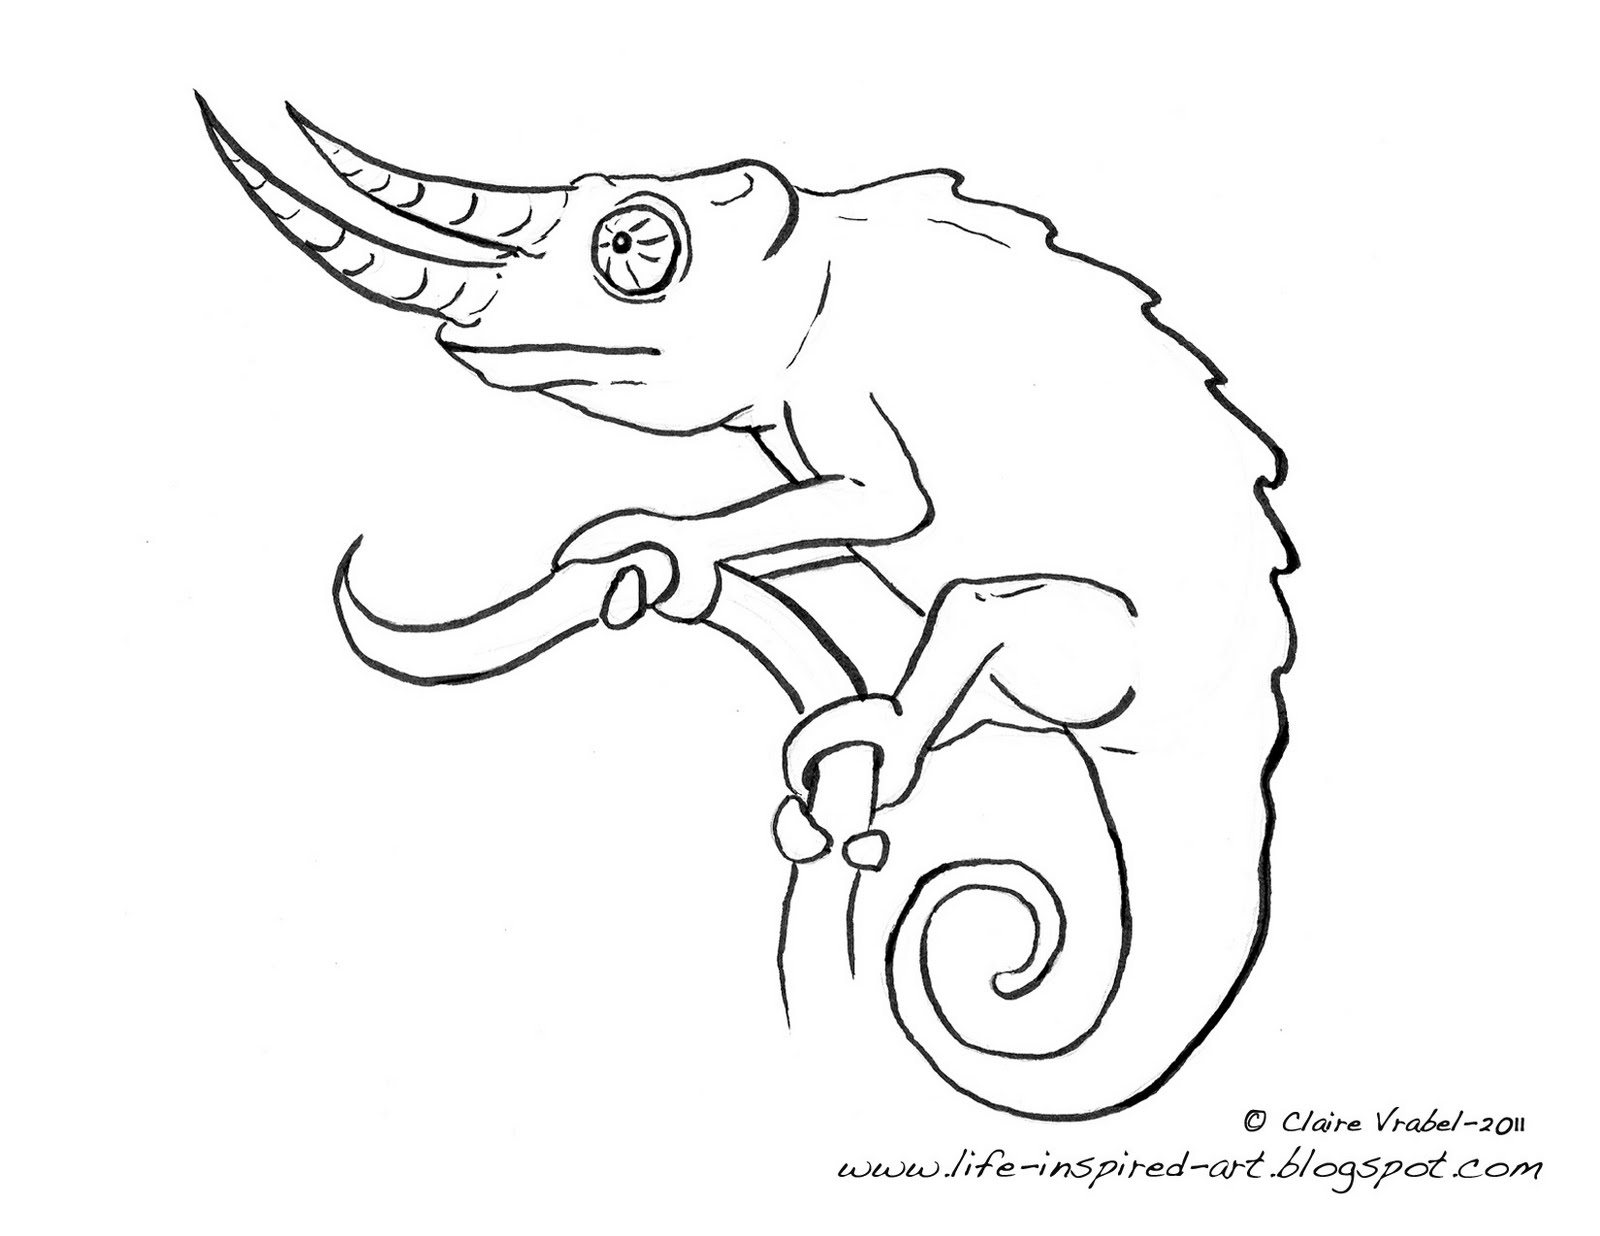 Life Inspired Art: How to Draw a Chameleon!